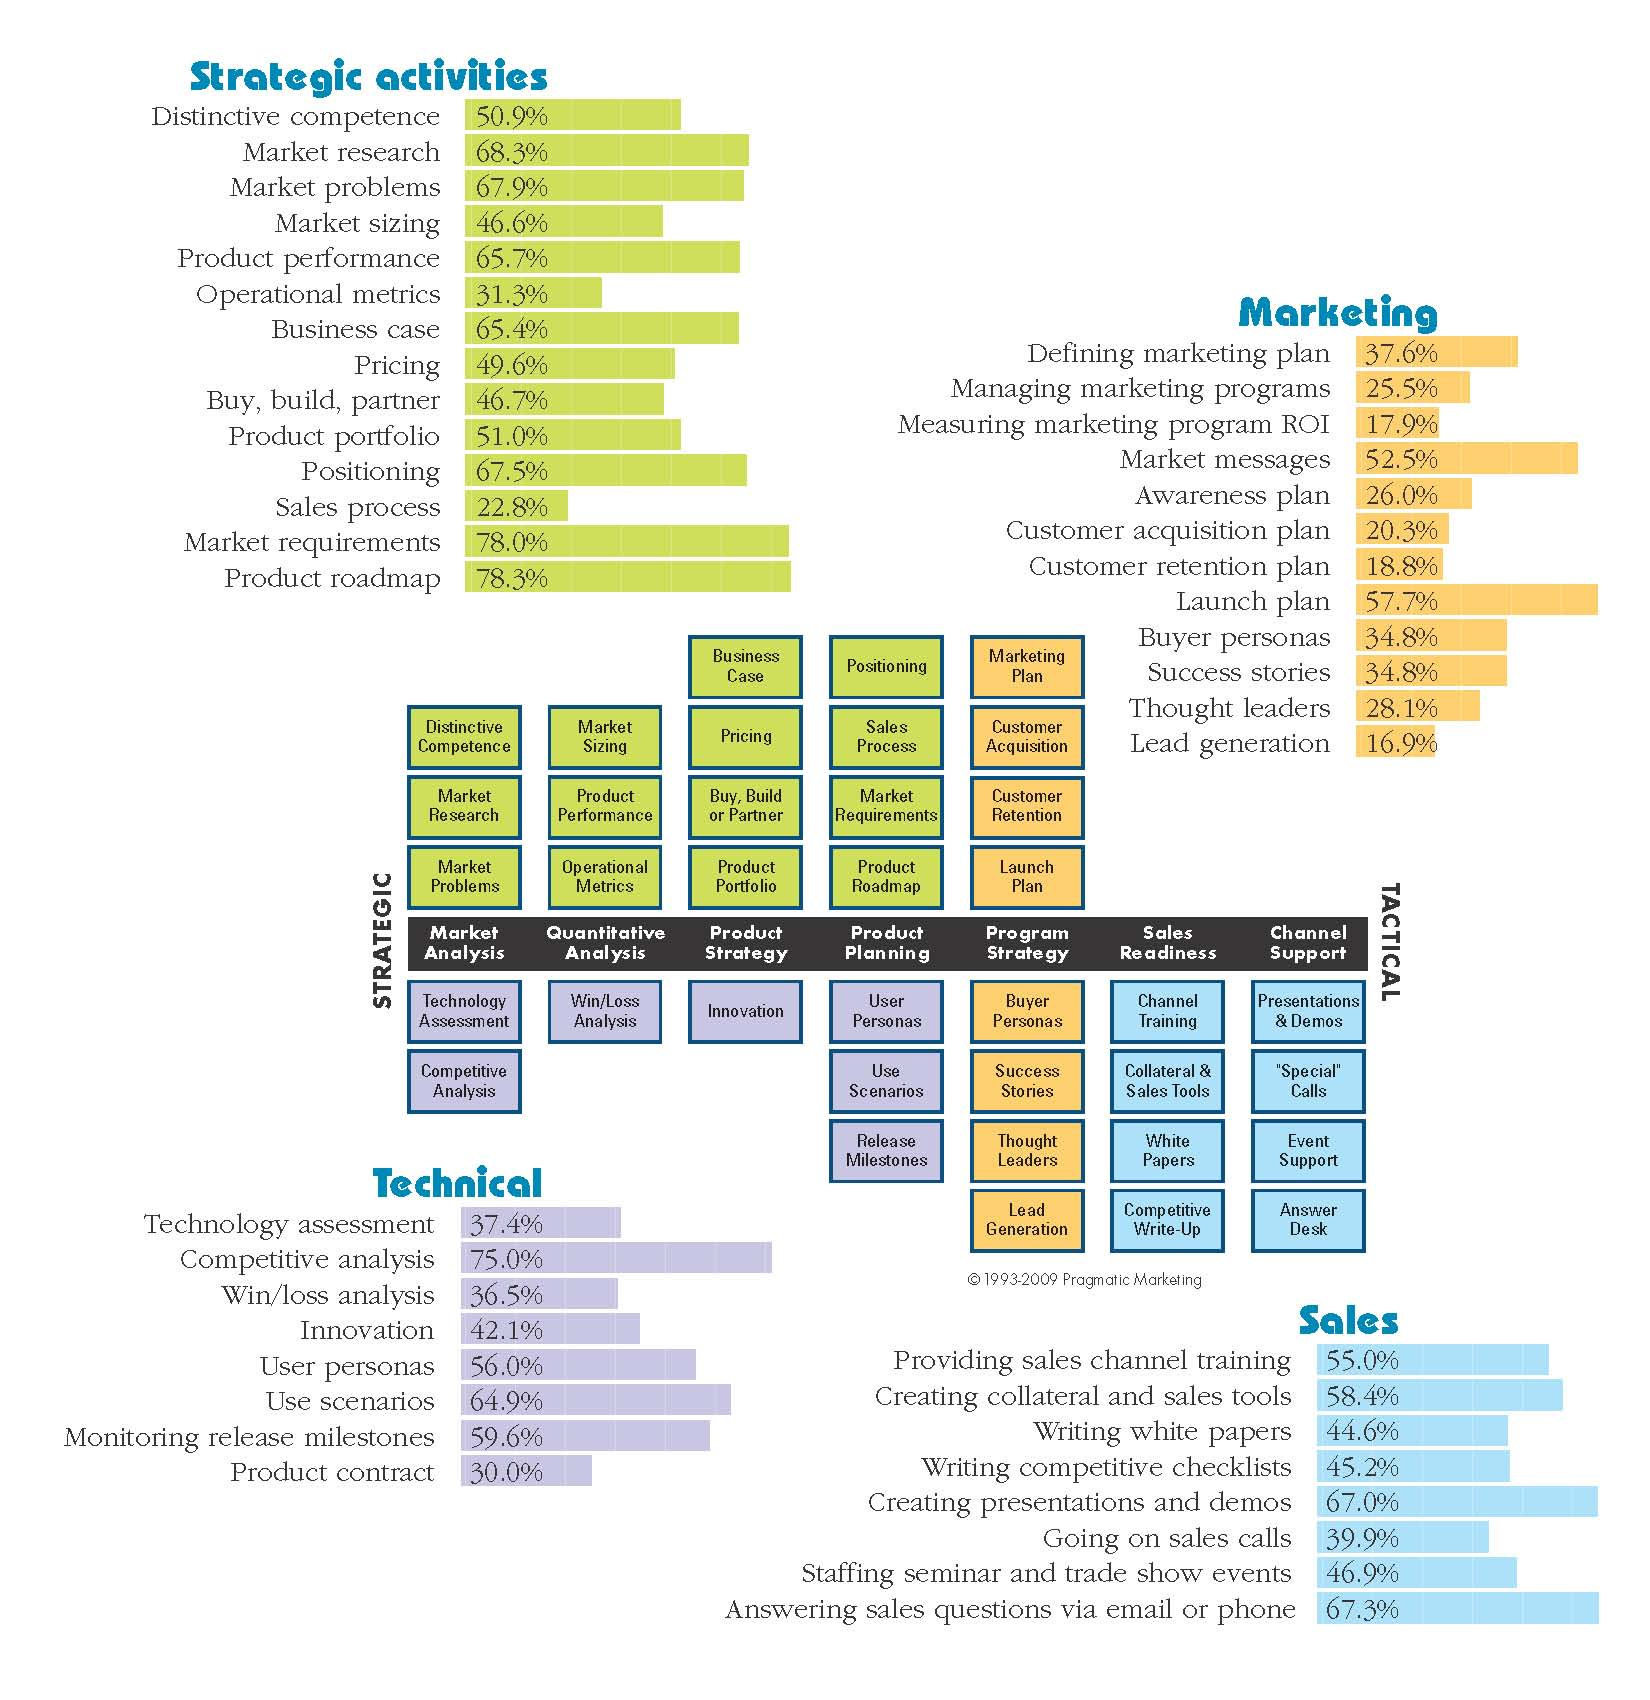 2008 Annual Product Management and Marketing Survey